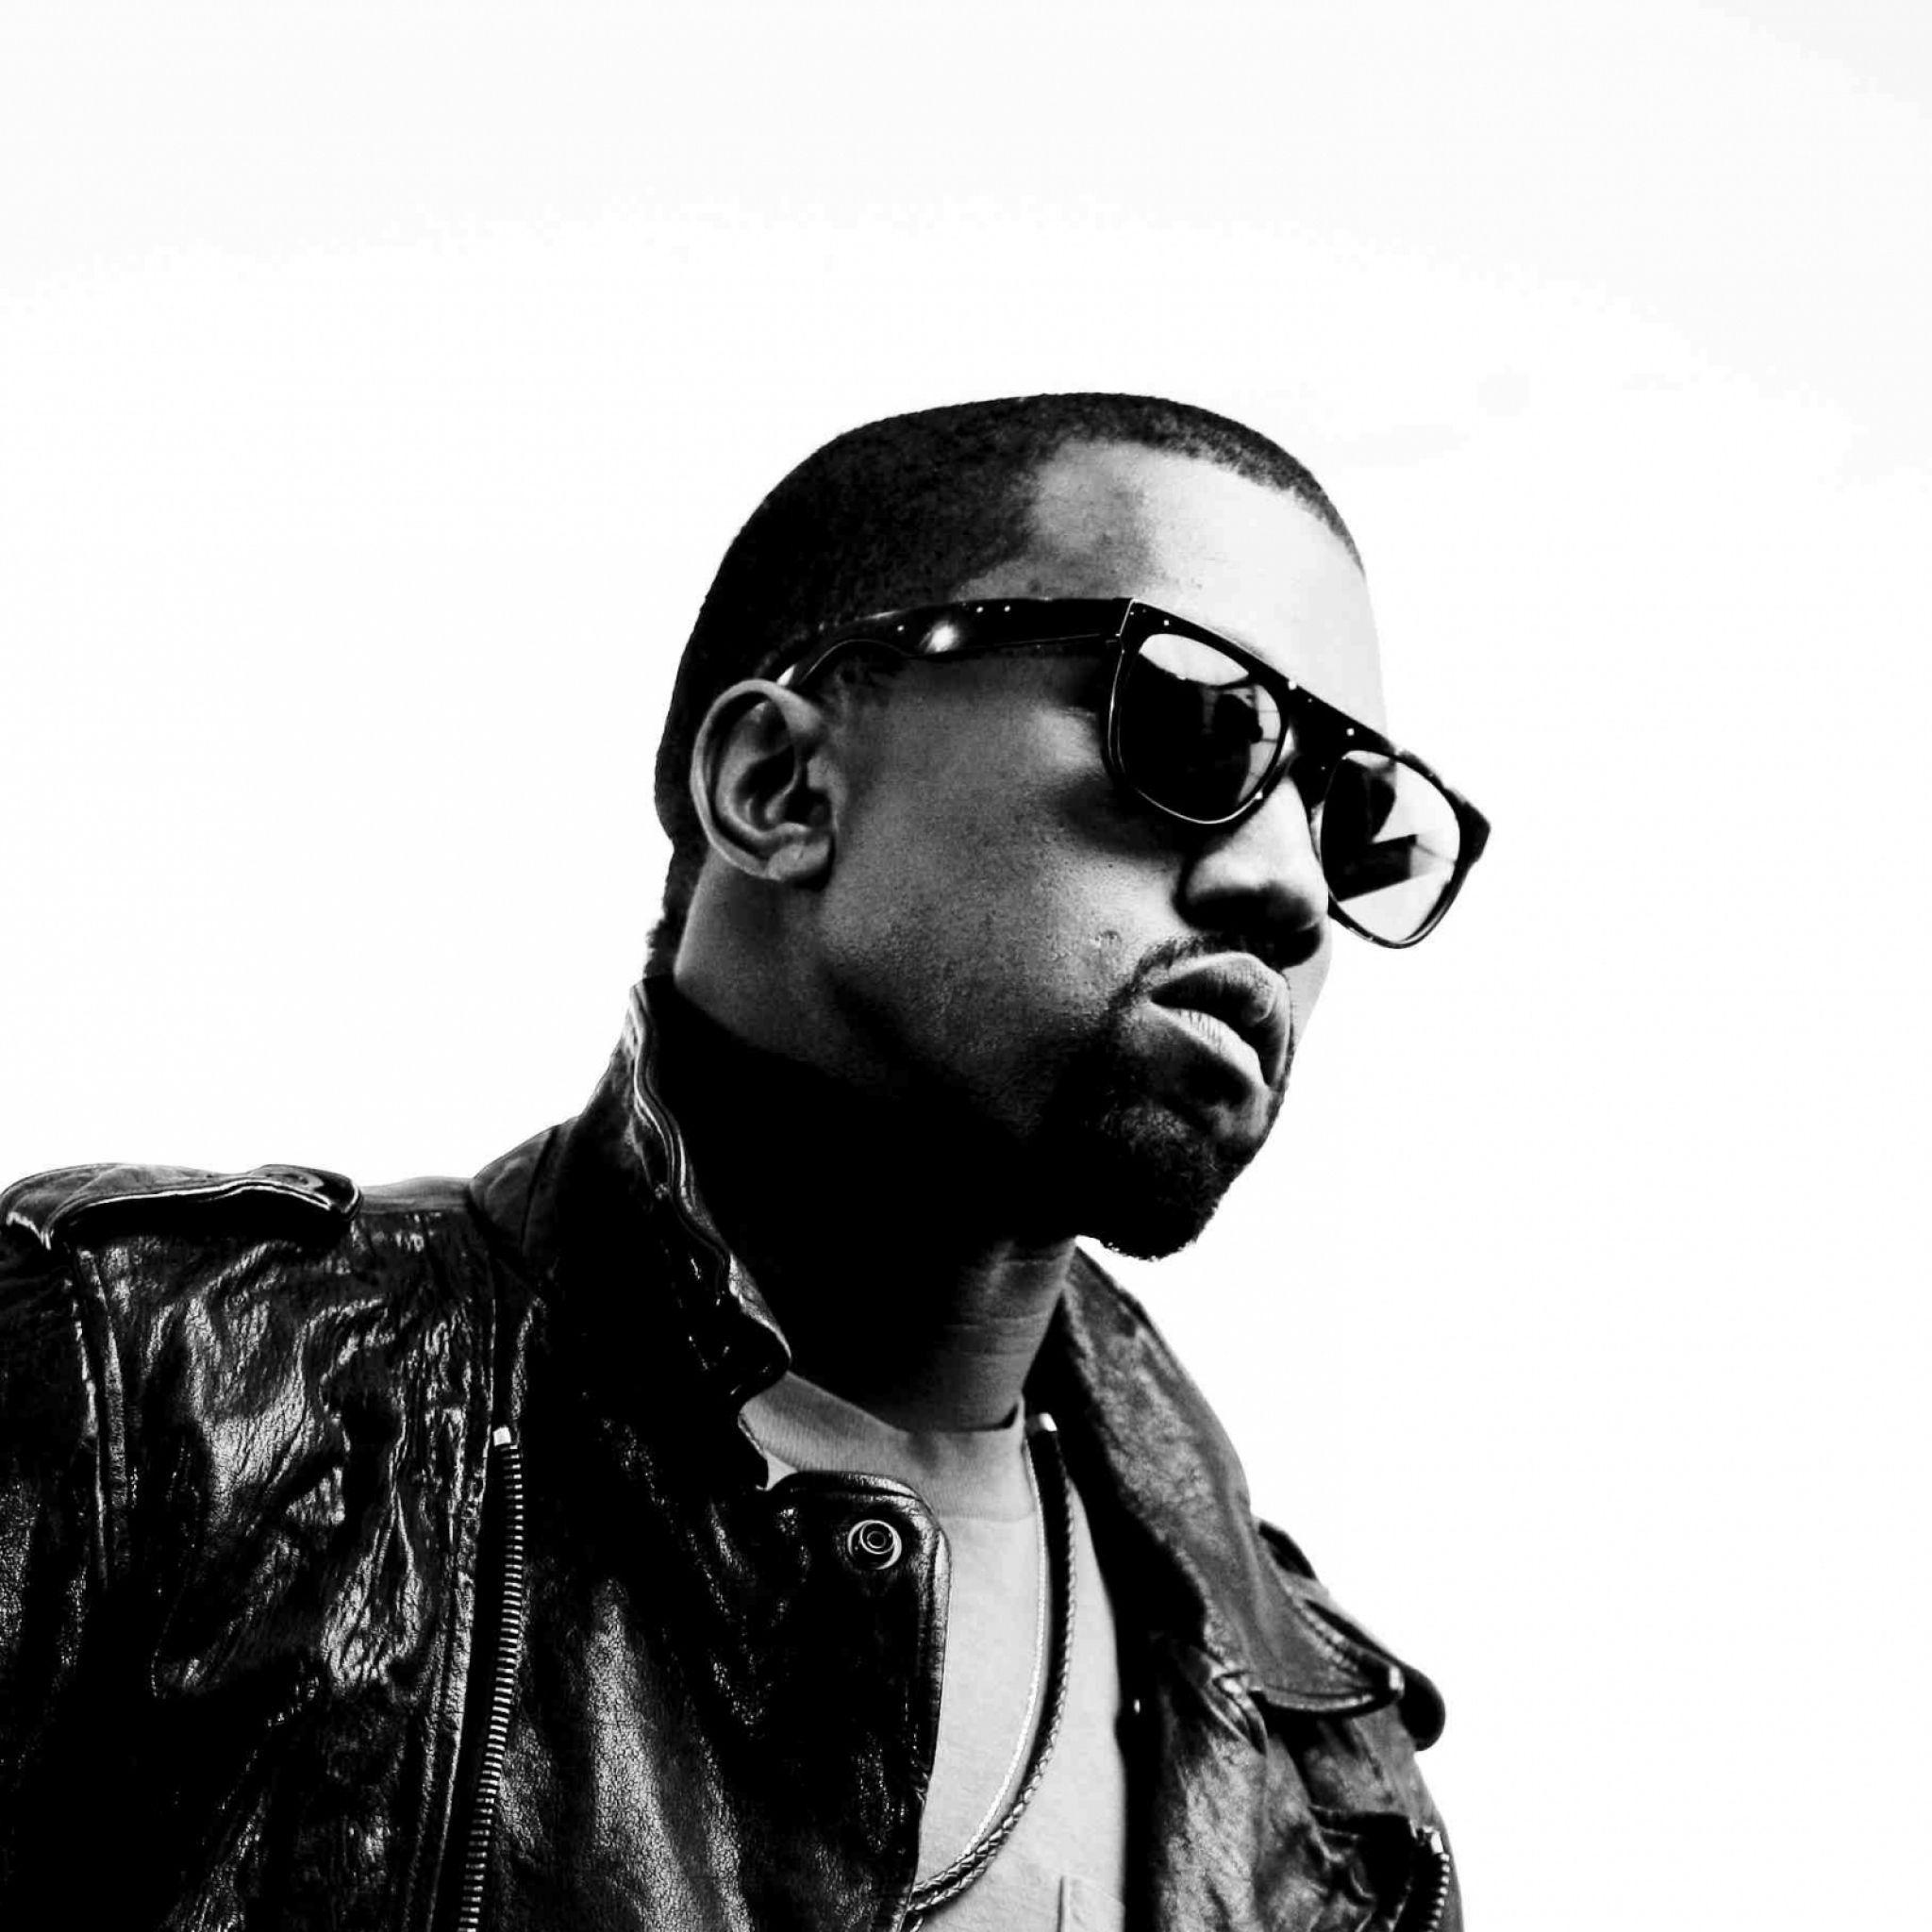 Kanye West Wallpaper Desktop | HD Picturez